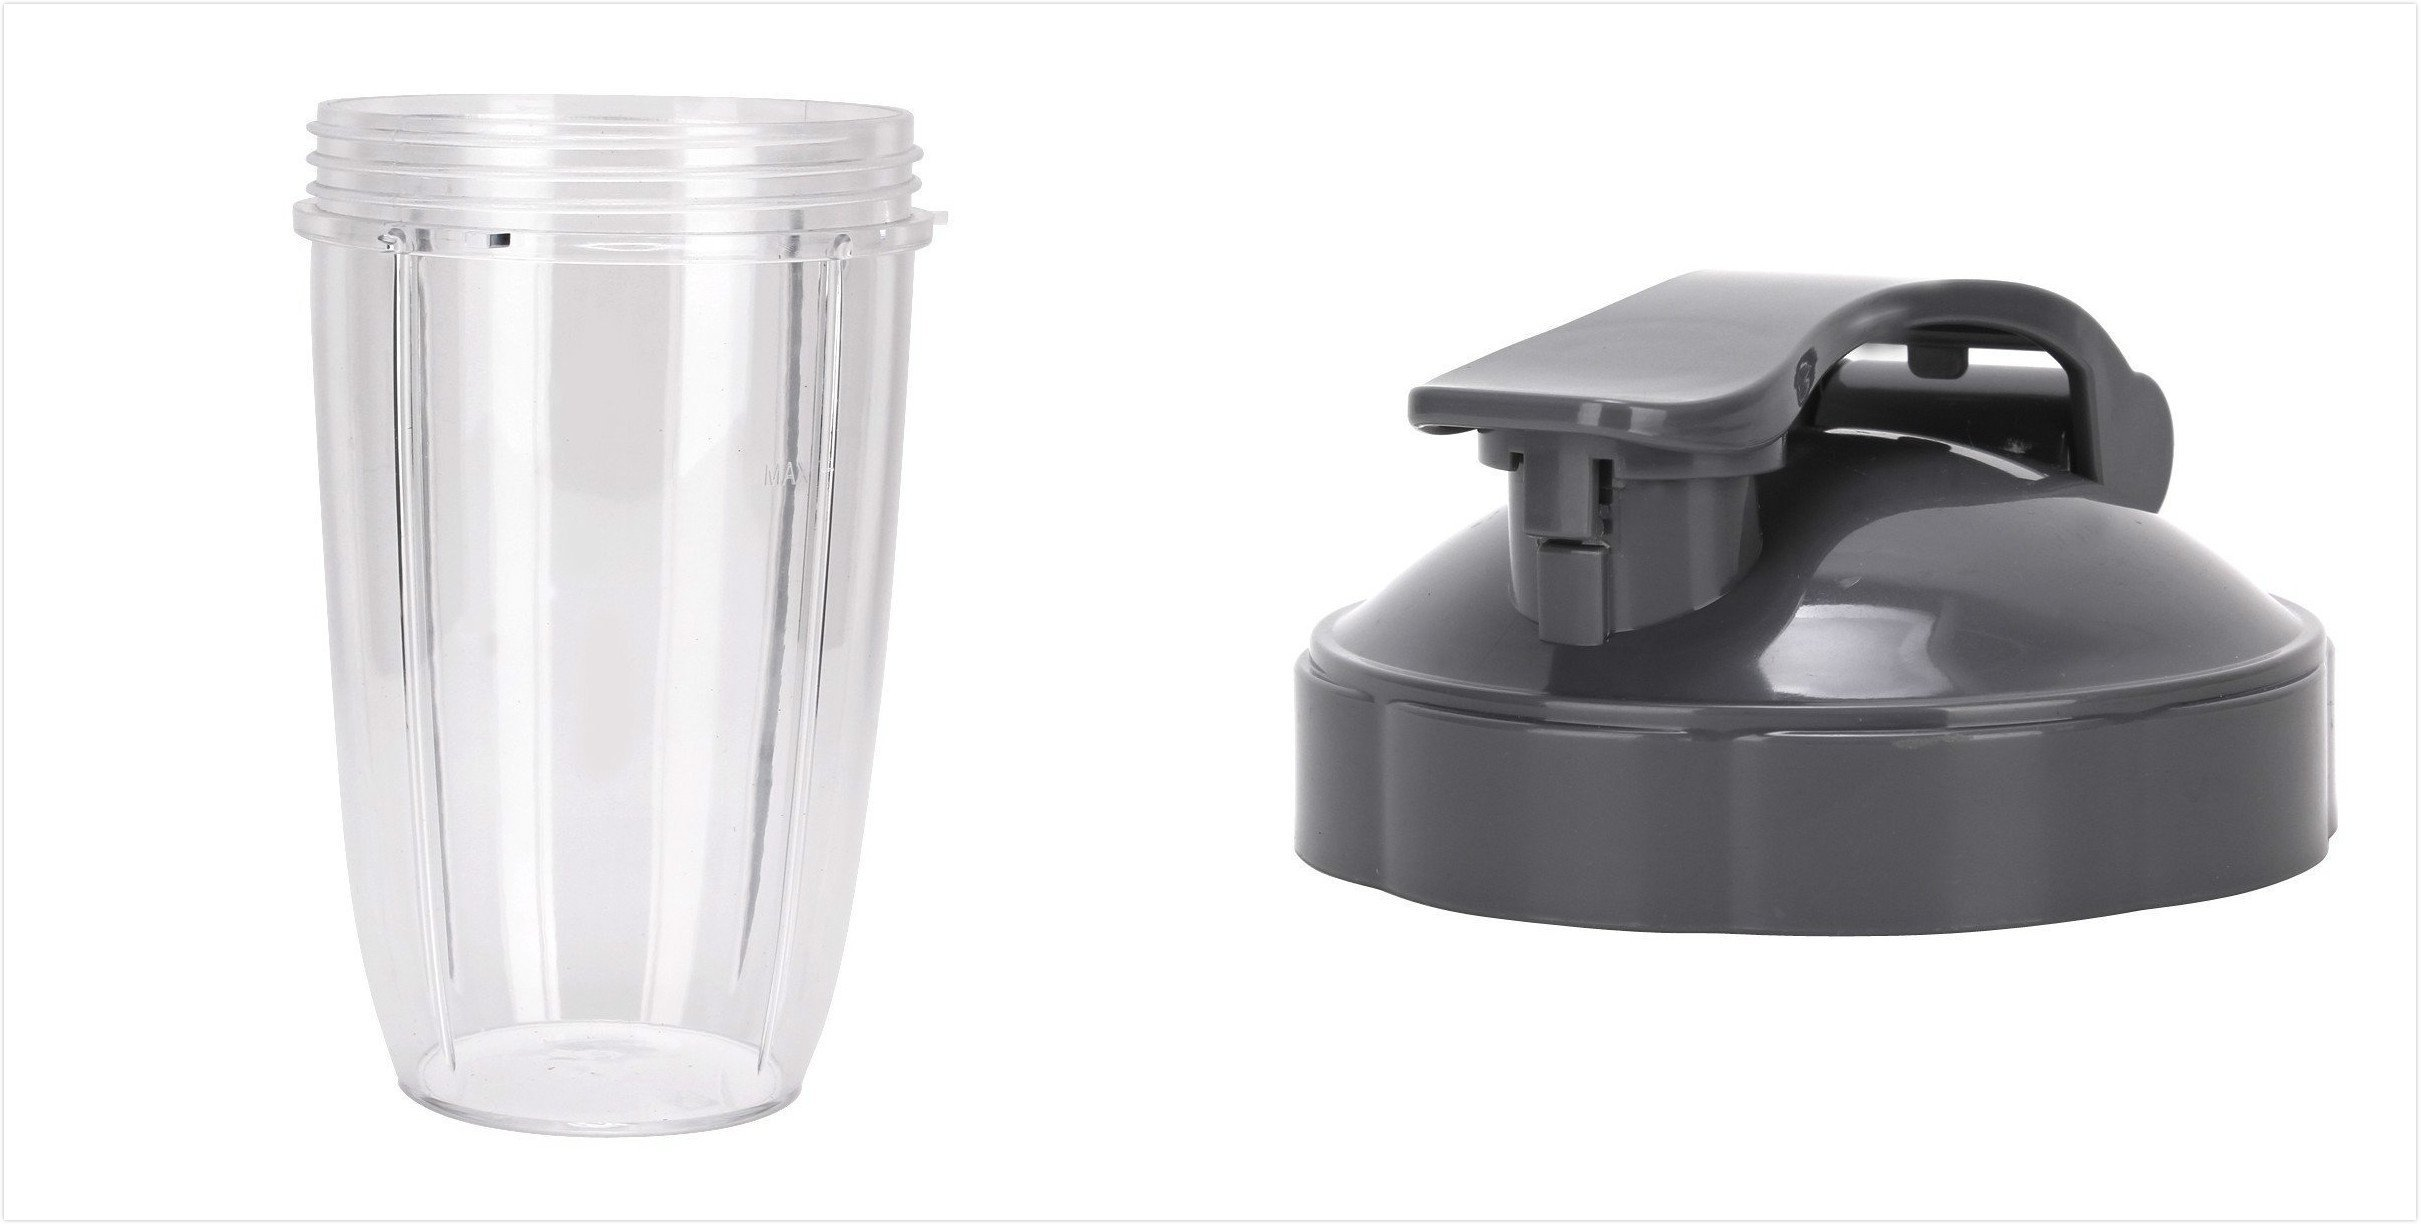 Sduck Replacement Parts for Nutribullet 24 OZ Cup Blender Juicer Mixer Accessories//Replacement Part Compatible with Nutribullet 600w 900w Blender